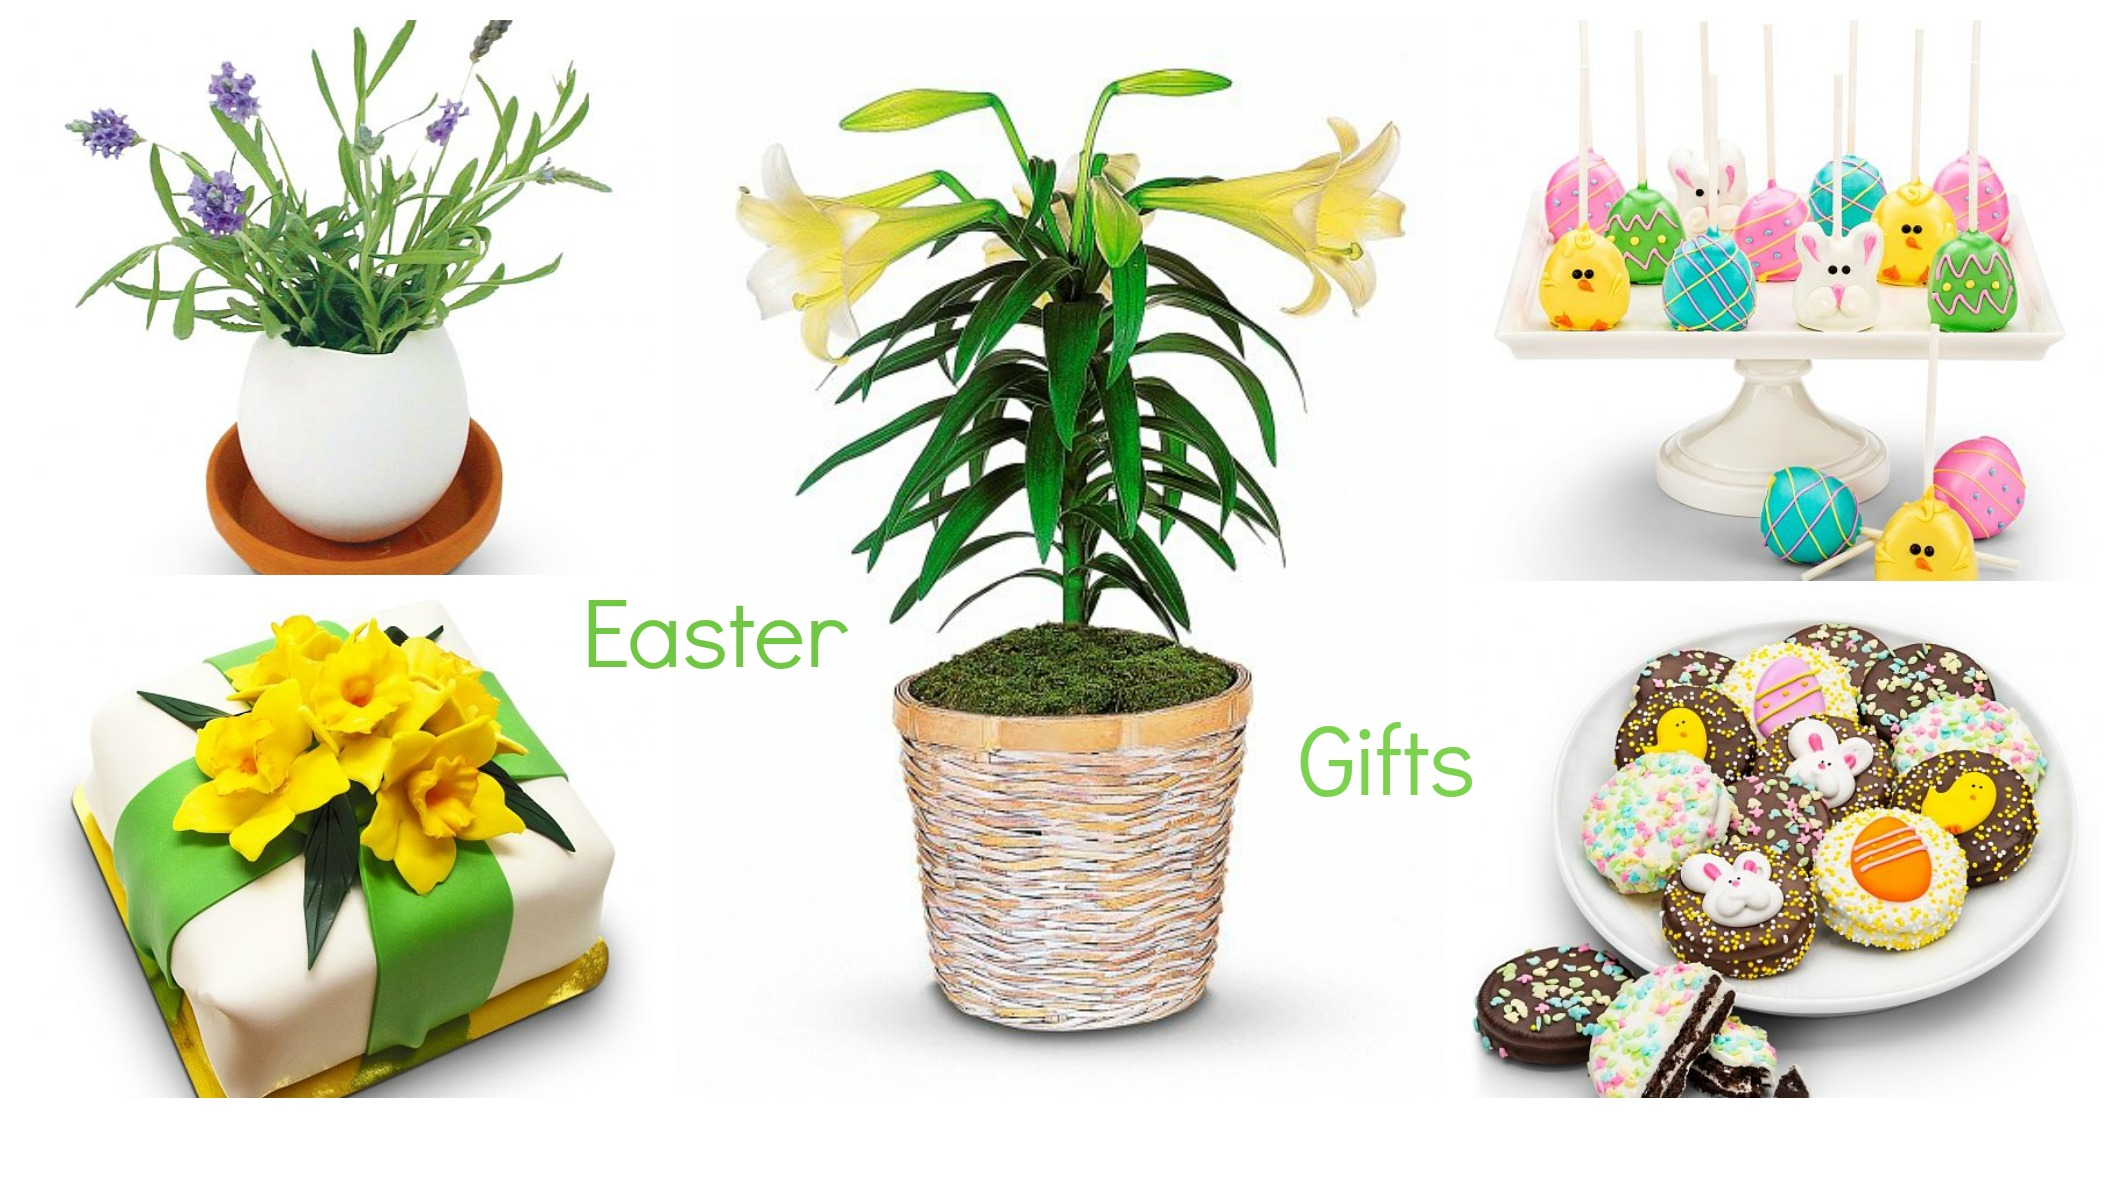 Top 5 realtor easter gifts realestateclientgifts negle Choice Image